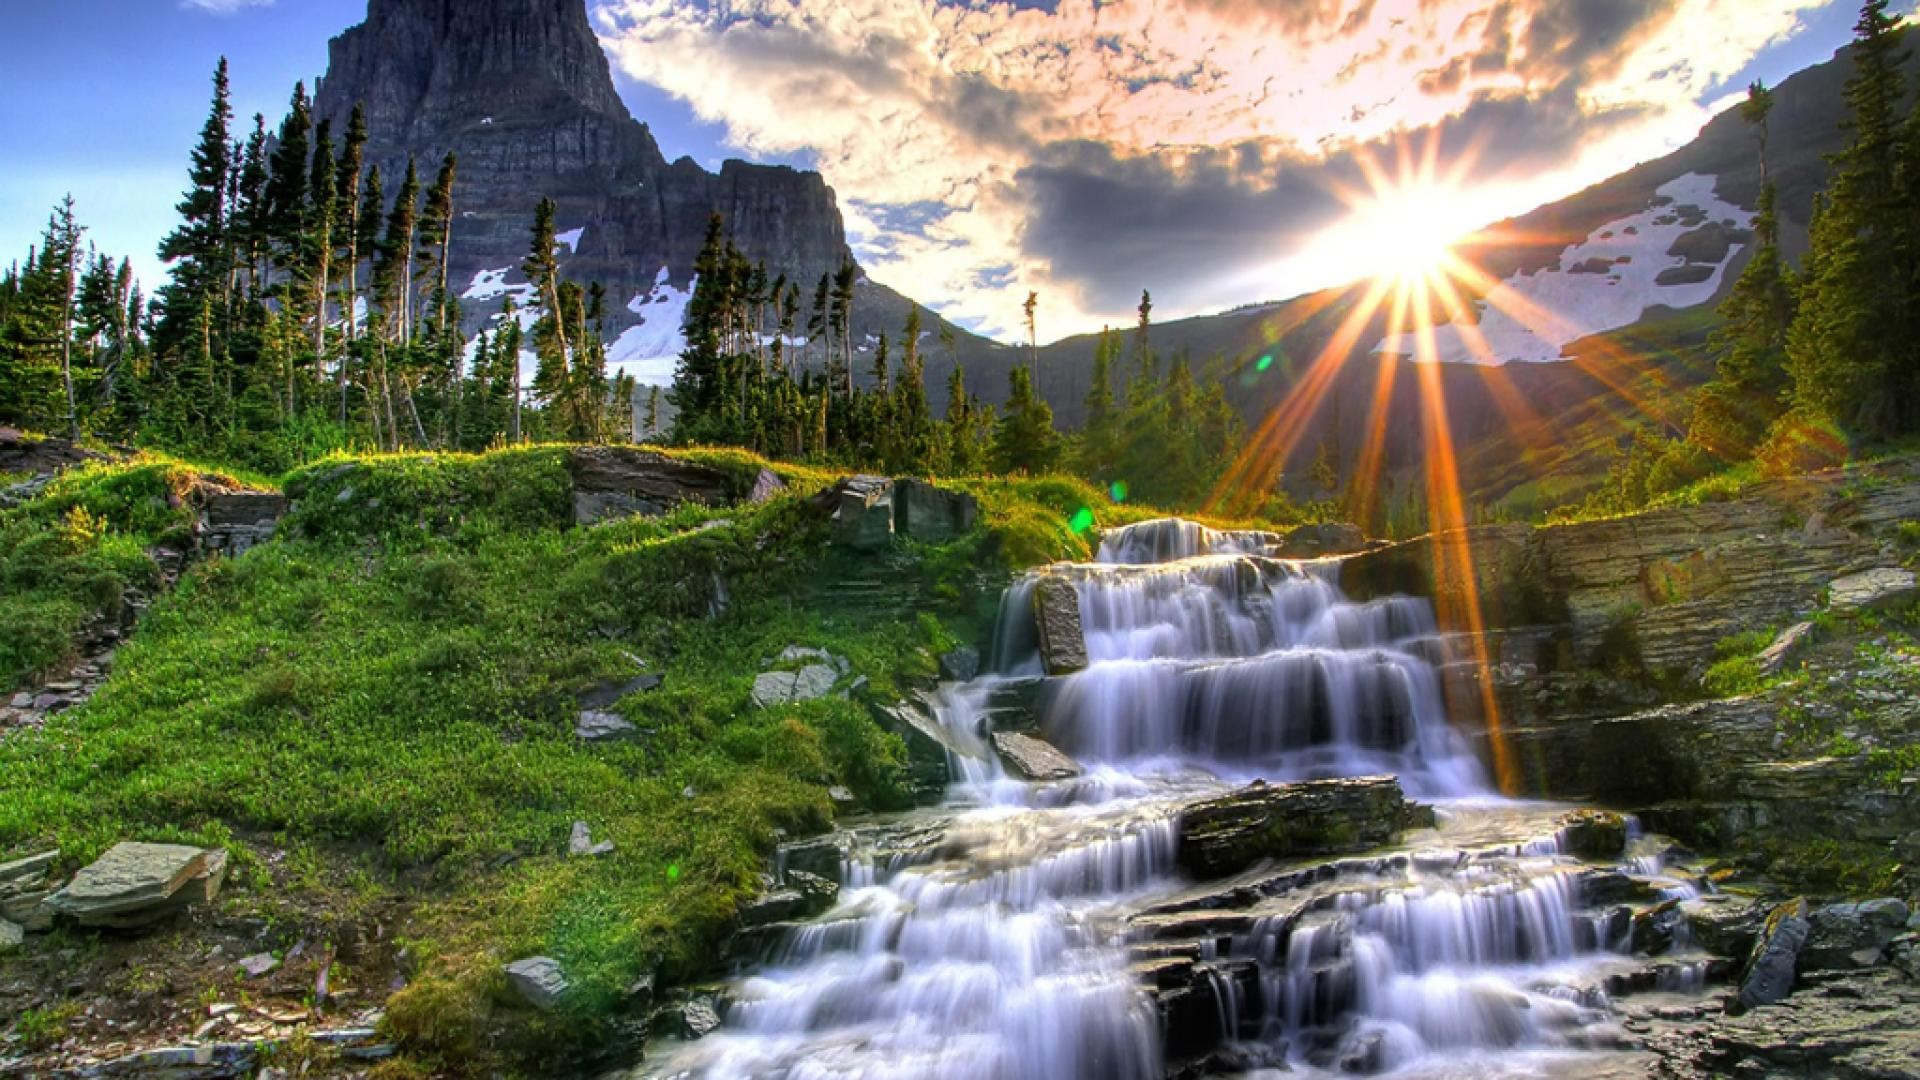 Wallpapers Collection «Waterfall Wallpapers» | HD Wallpapers | Pinterest | Waterfall  wallpaper, Hd wallpaper and Wallpaper